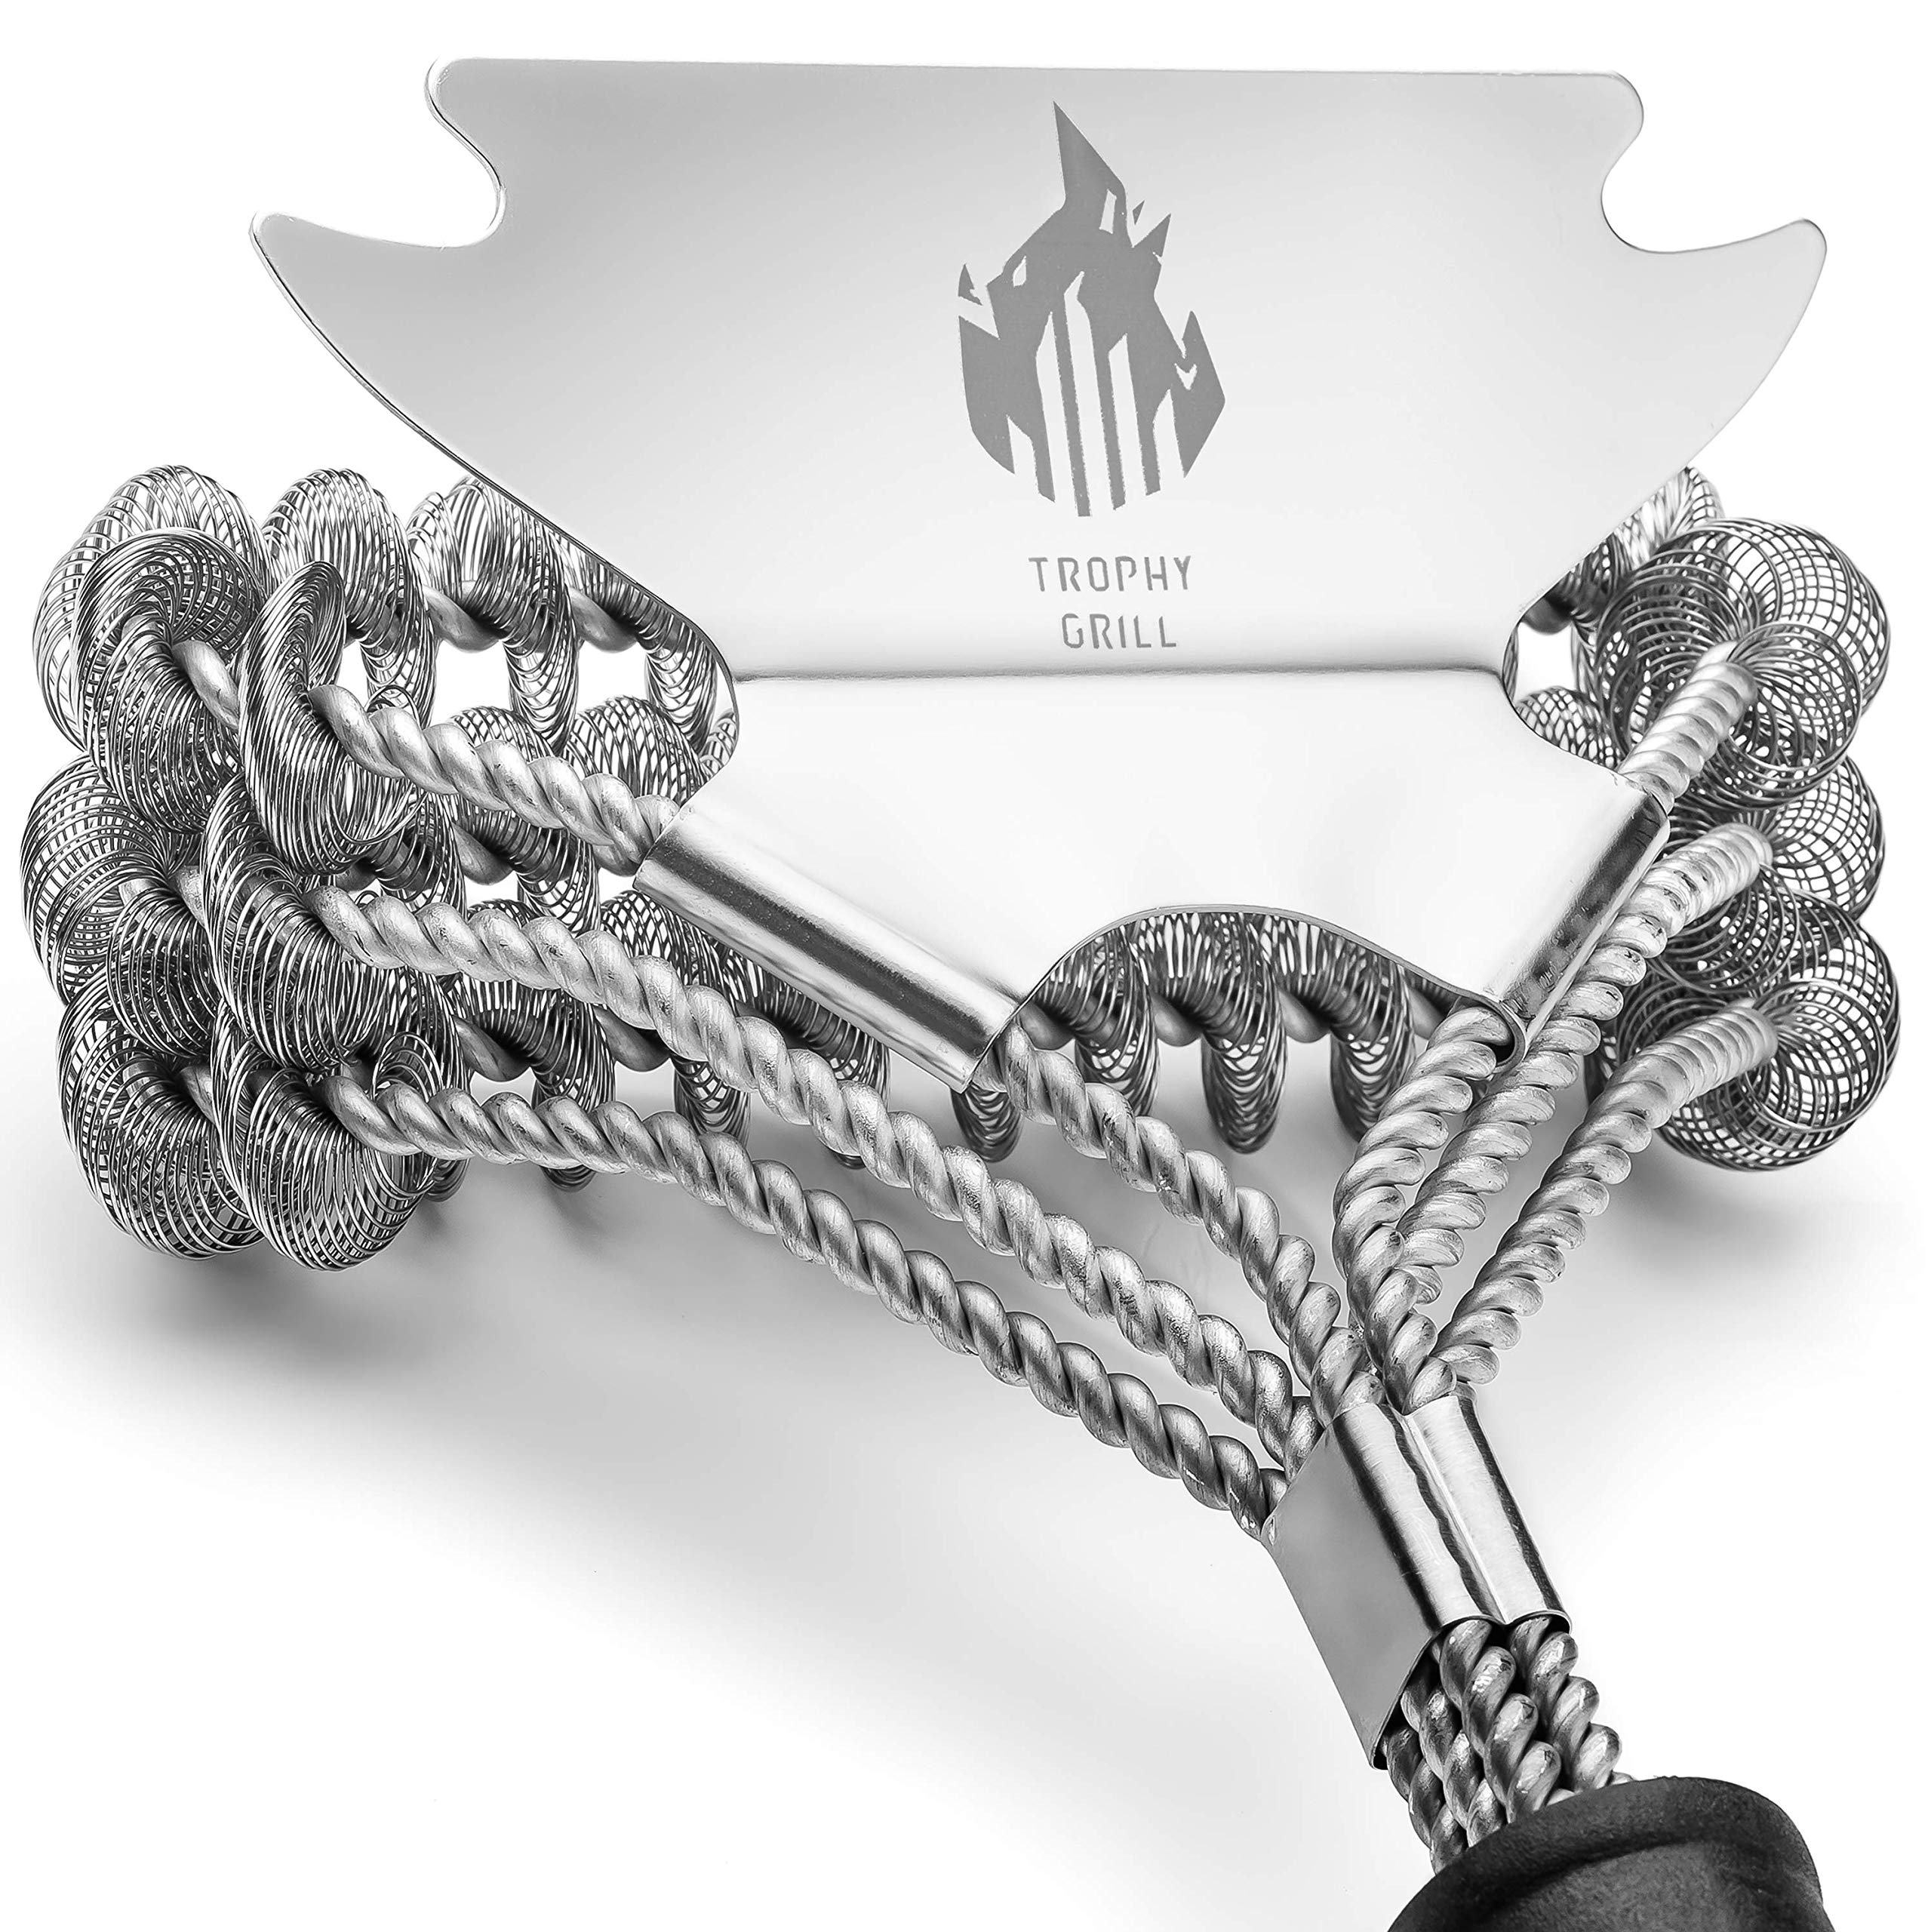 Trophy Grill Bristle Free Cleaner 100% Rust Resistant BBQ Grill Brush with Scraper - Professional 18'' Heavy Duty Stainless Steel Scrubber - an Essential Grilling Accessory by Trophy Grill